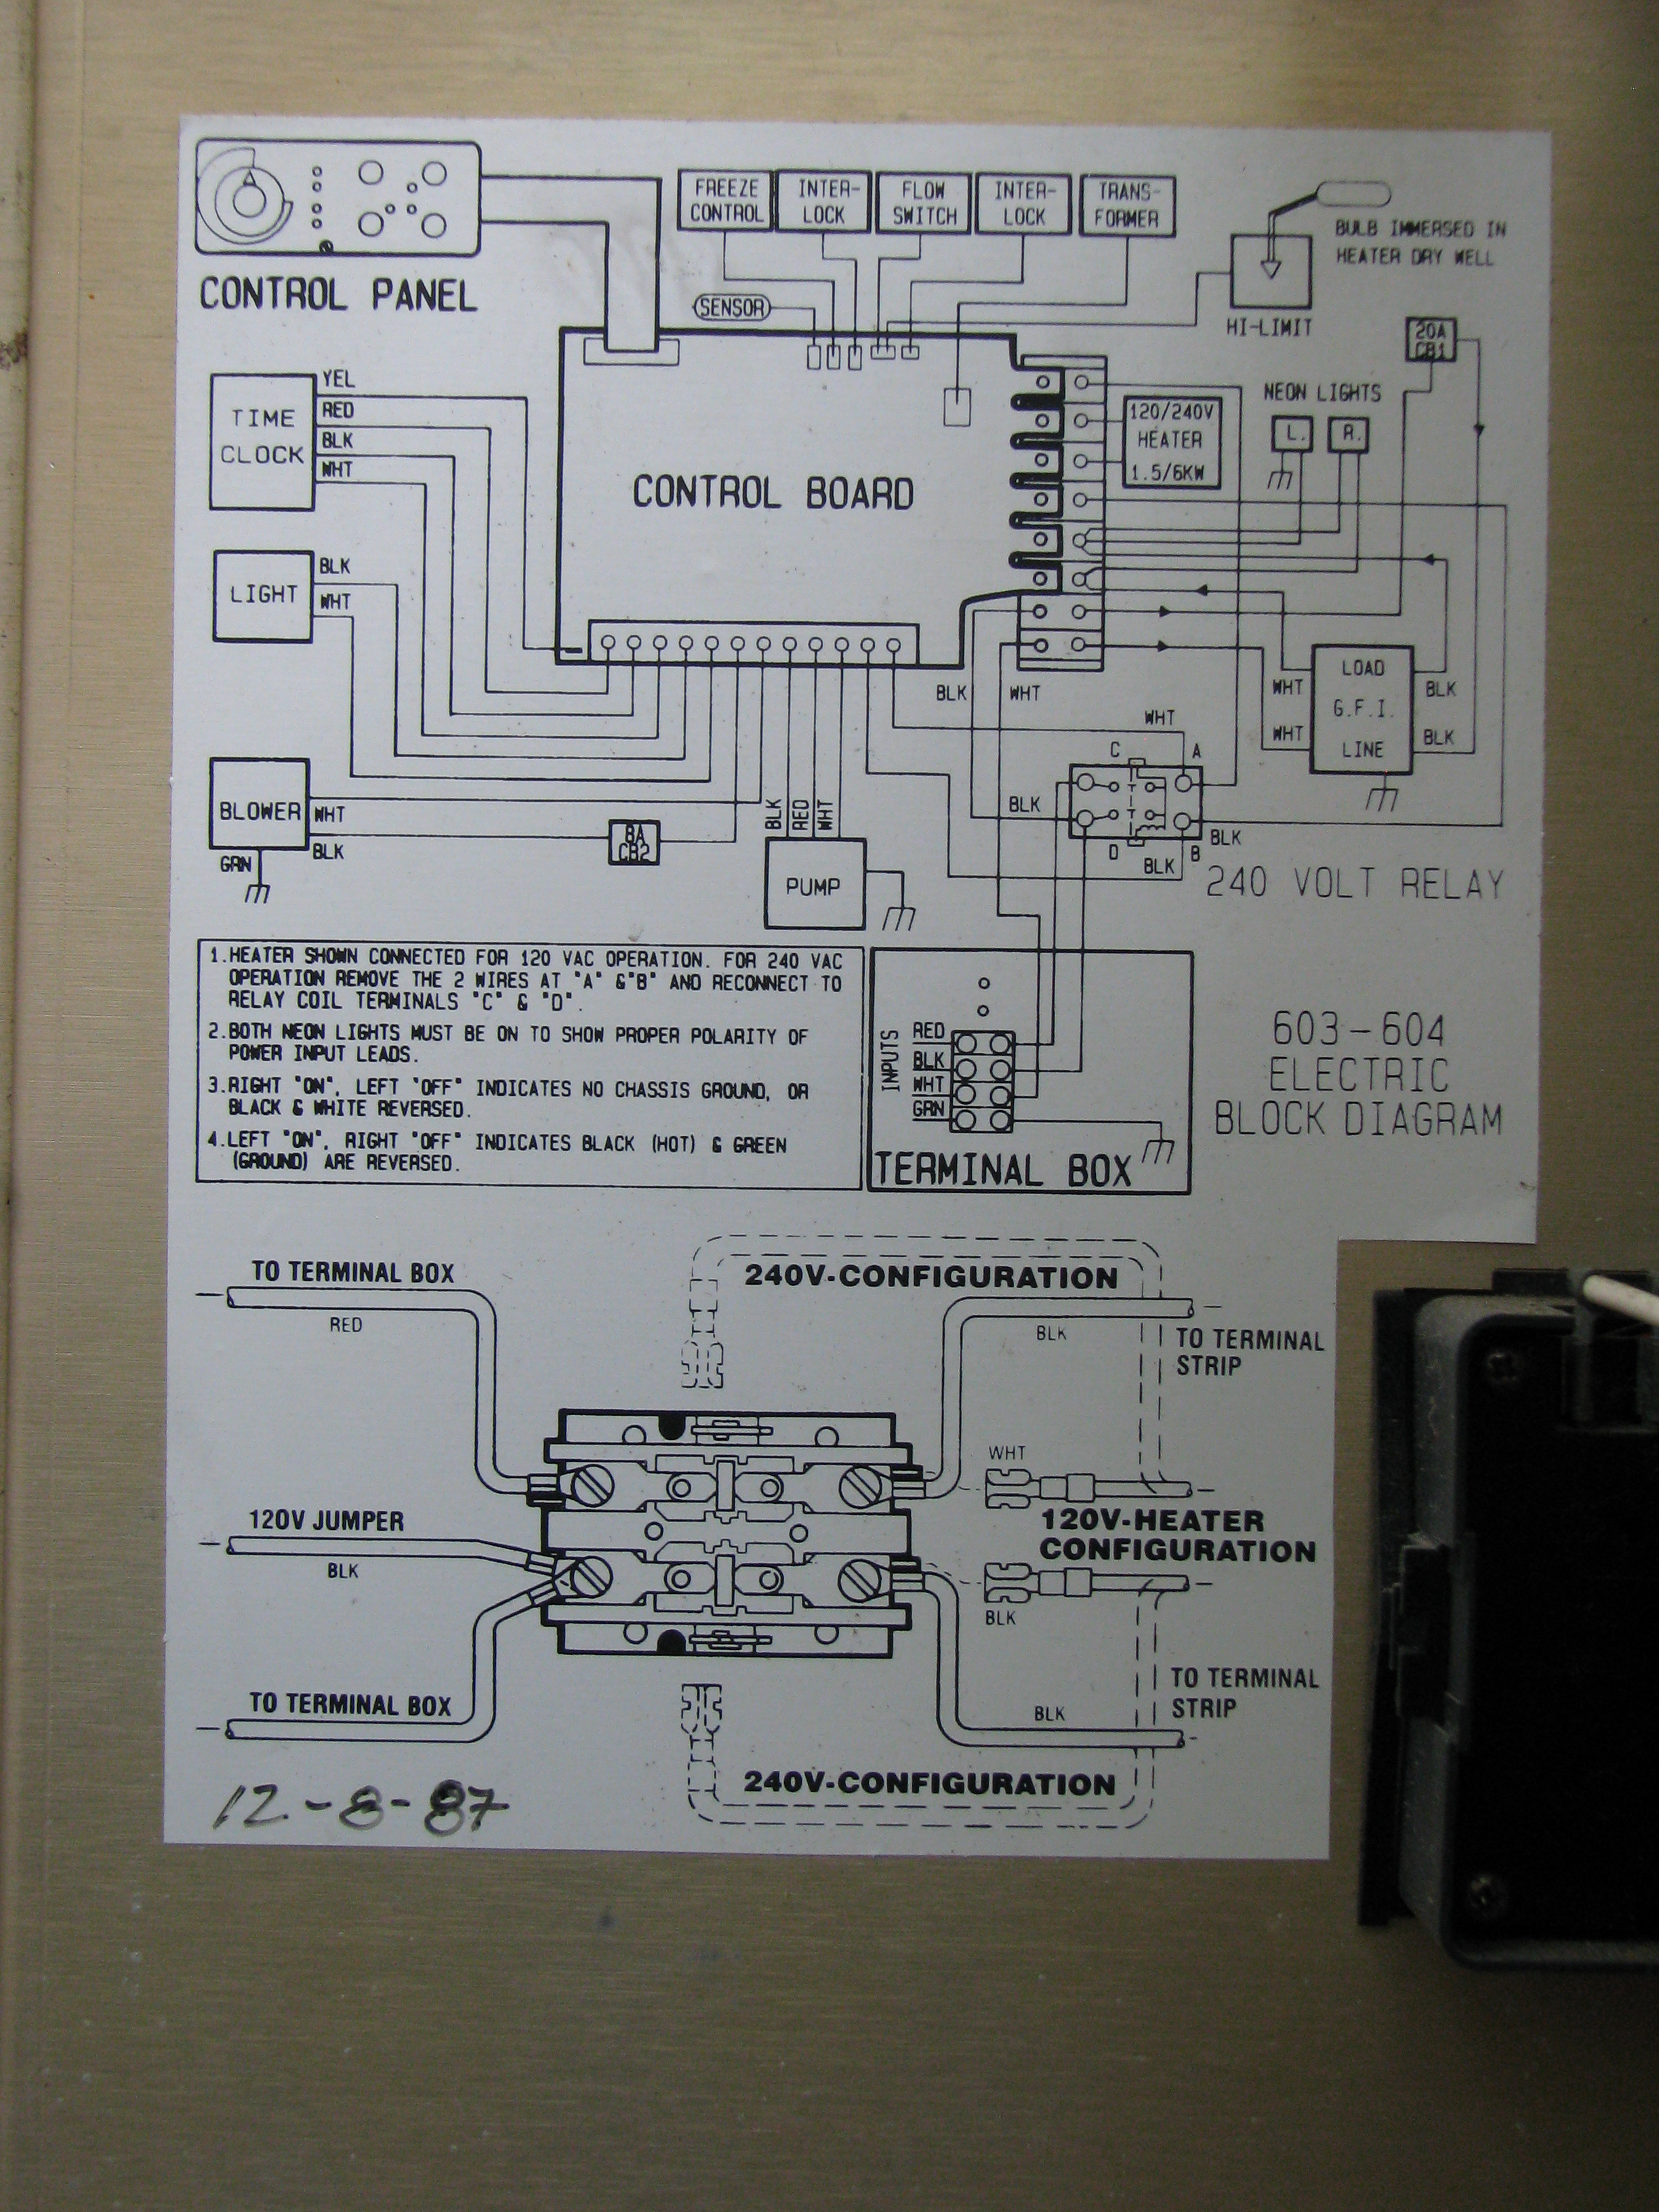 I was given a 1987 or 88 sundance cameo jr spa. It was said ...  Volt Light Relay Wiring Diagram on 240 volt time delay relay, 240 volt 3 phase motor wiring, california three-way switch diagram, 240 volt gfci breaker diagram, simple photocell diagram, 24 volt wiring diagram, air compressor 240 volt circuit diagram,